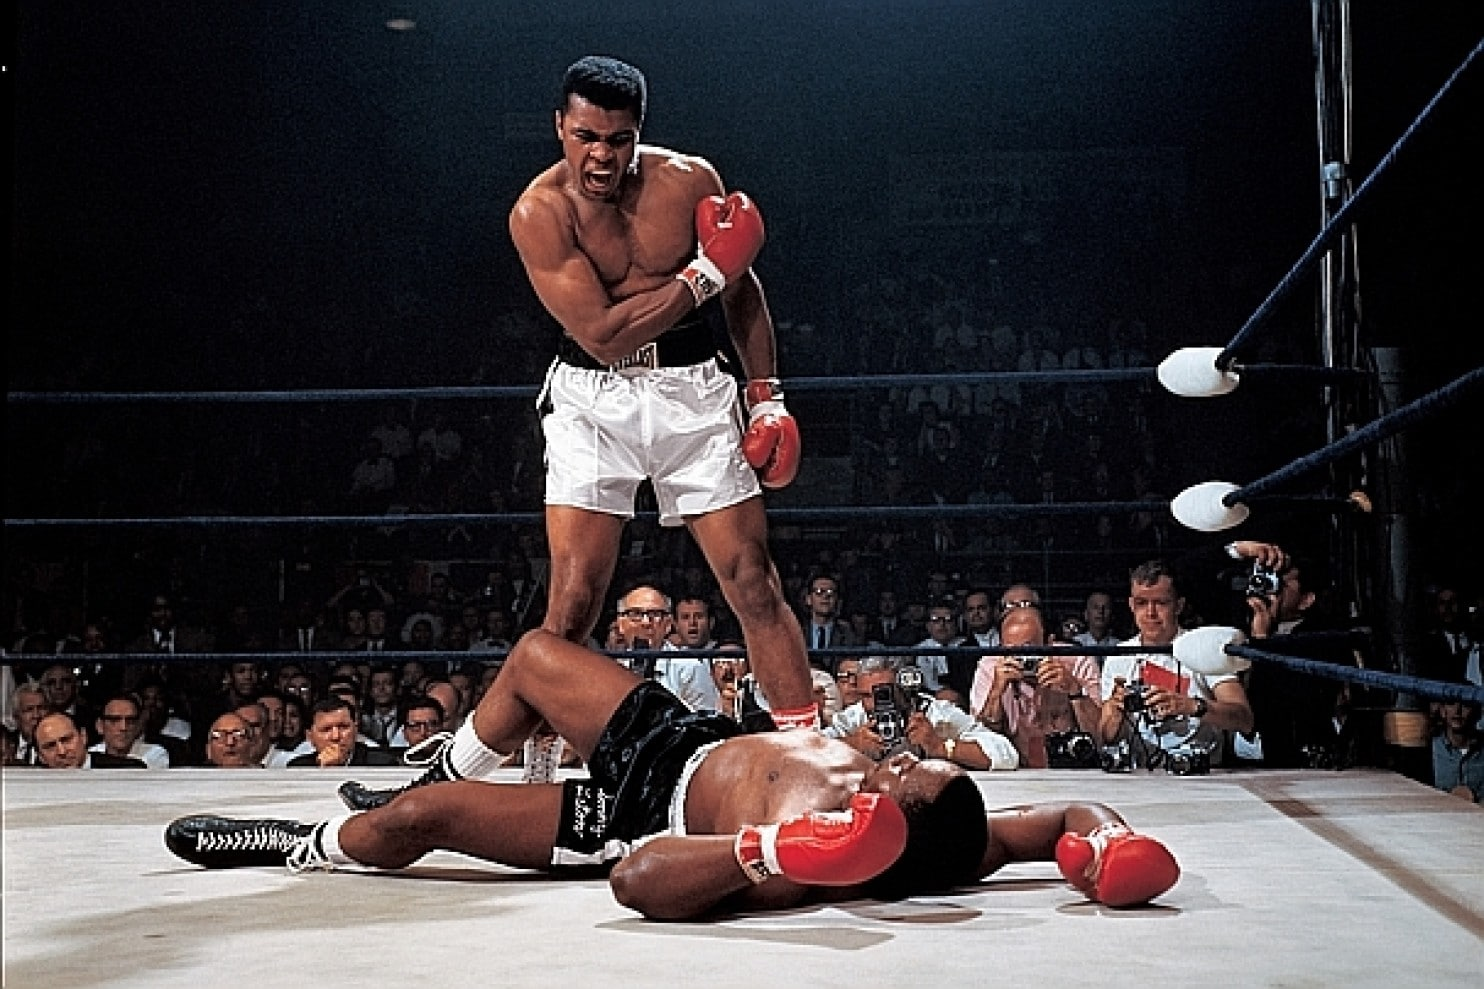 best boxers of all time- Know more about them